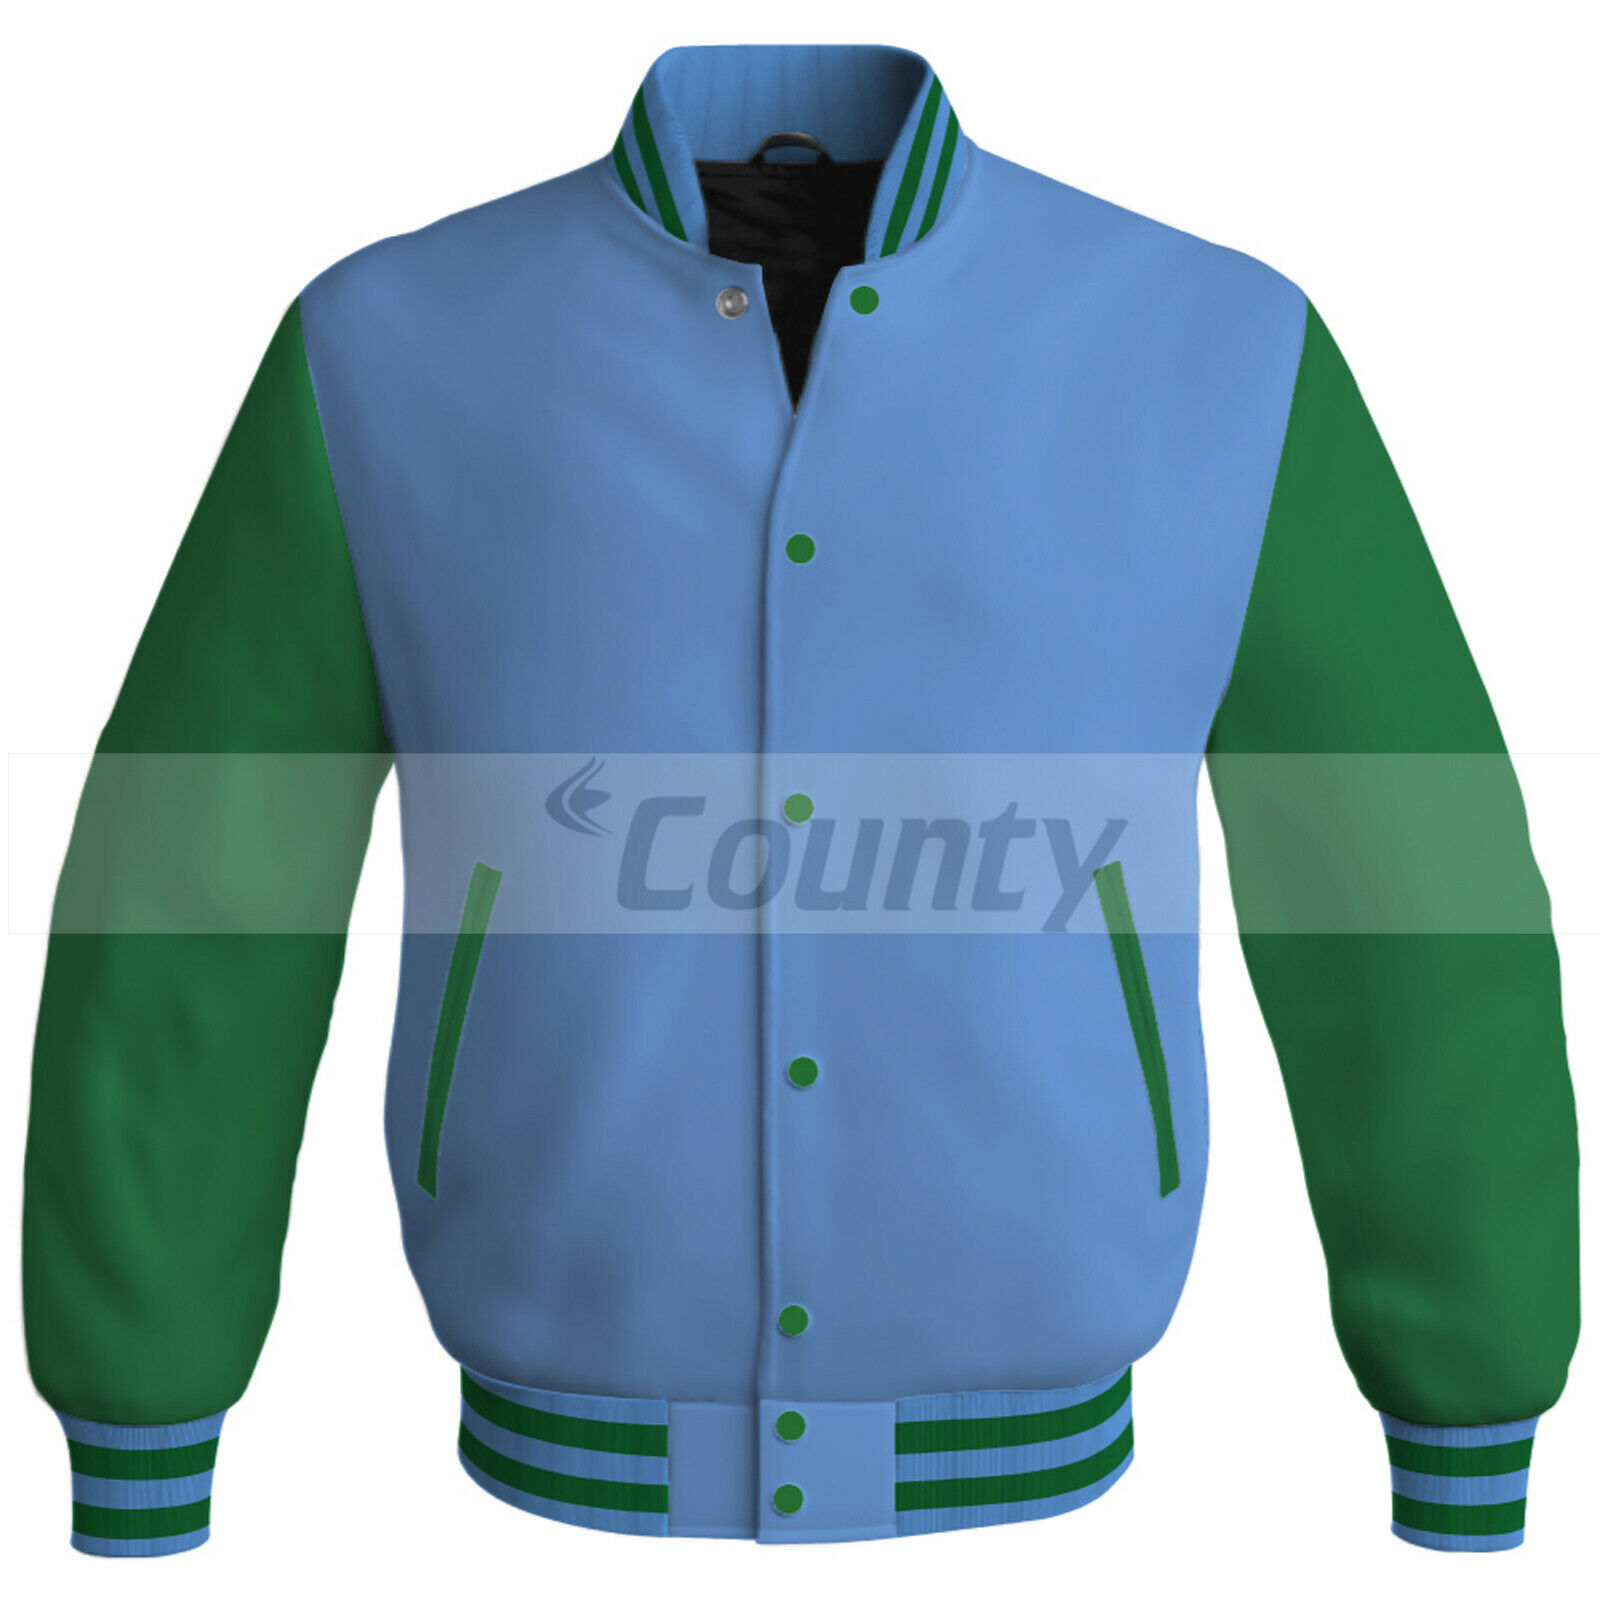 Primary image for Bomber Baseball Letterman College Super Jacket Sports Sky Blue Kelly Green Satin